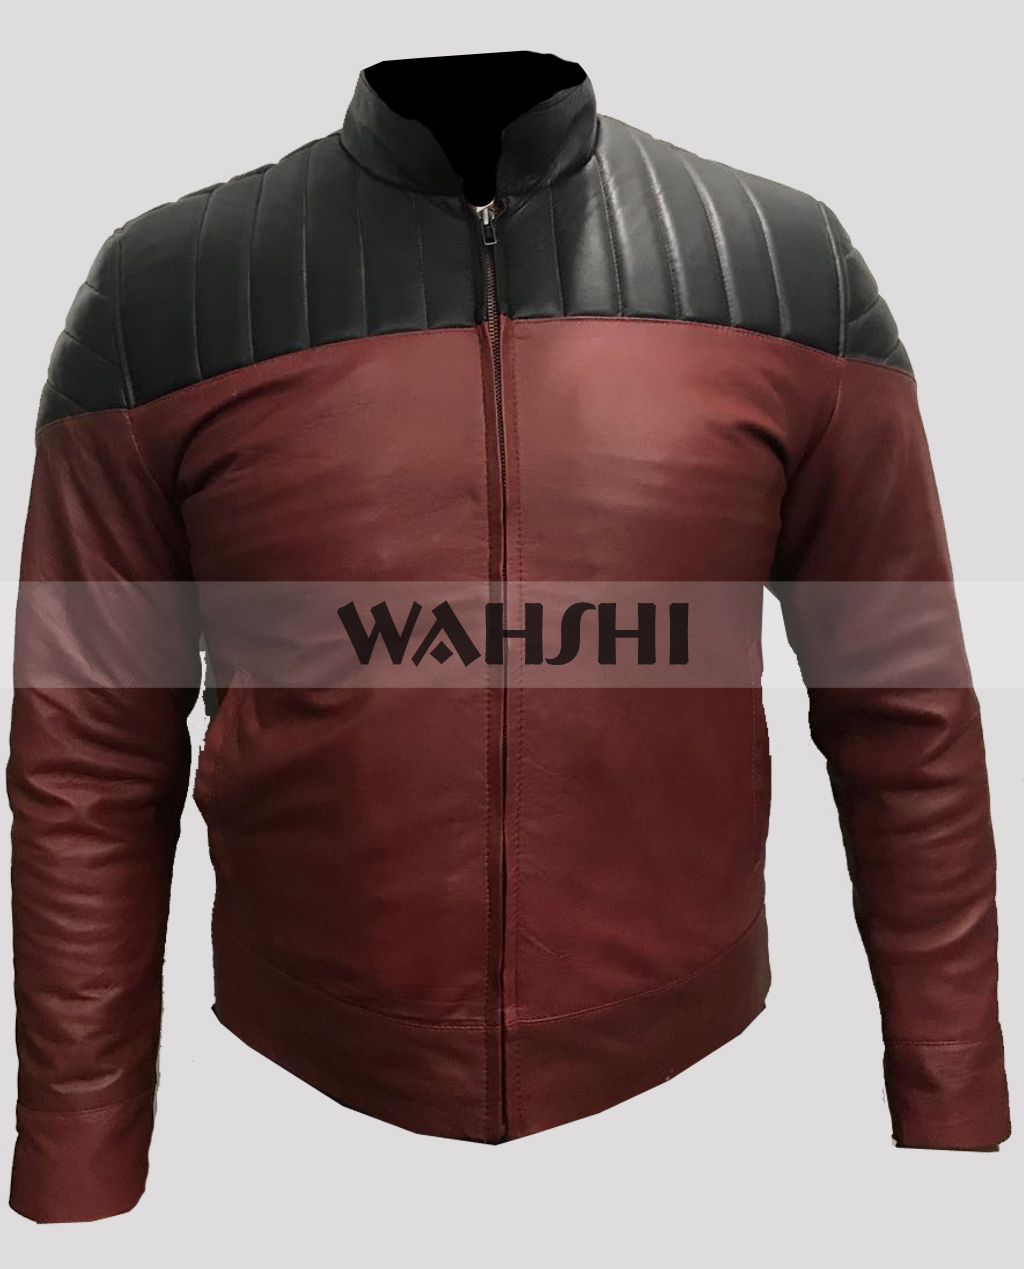 star-trek-captain-picard-jacket